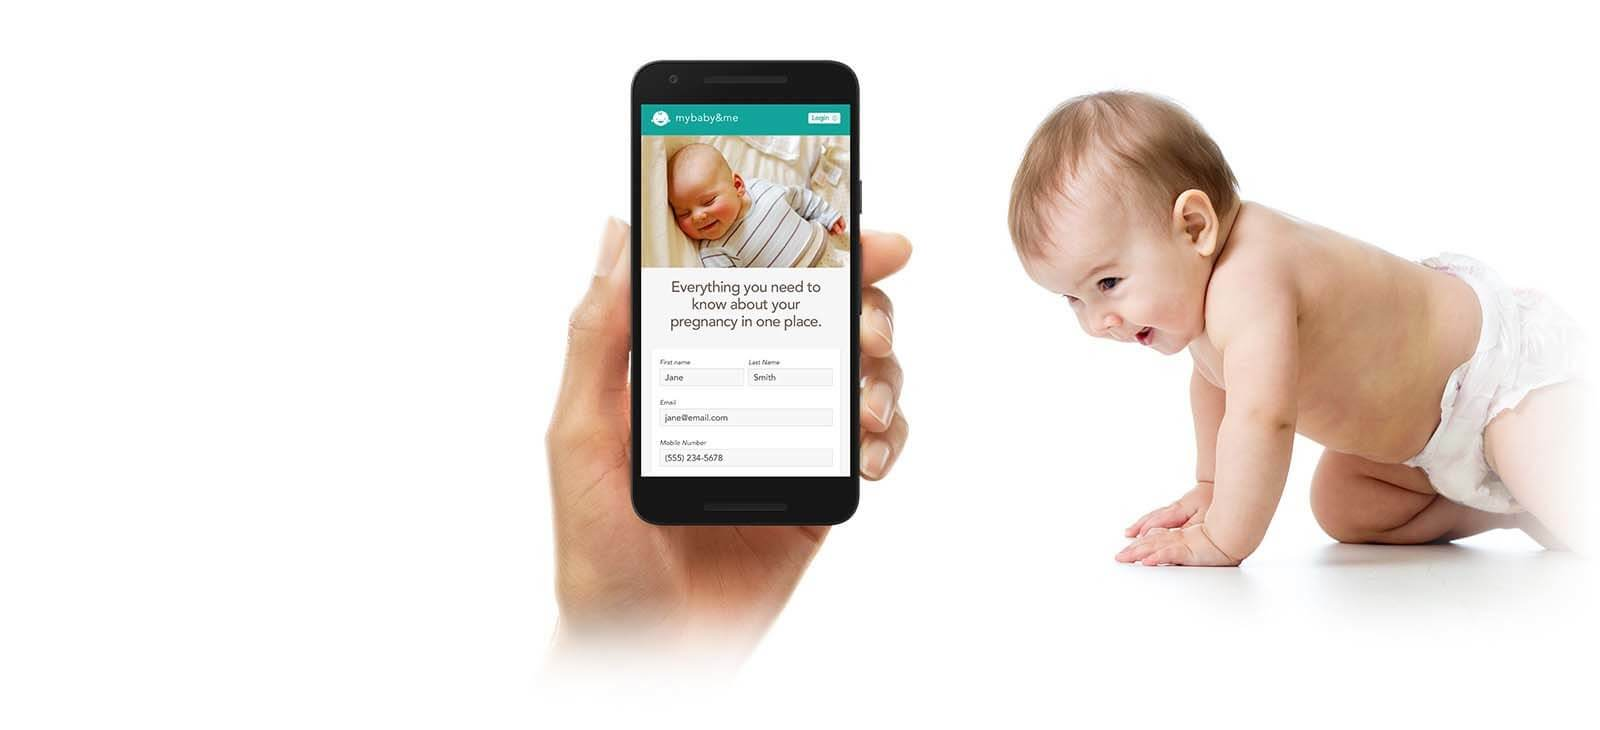 Kaiser Permanente iOS App on iPhone with smiling baby